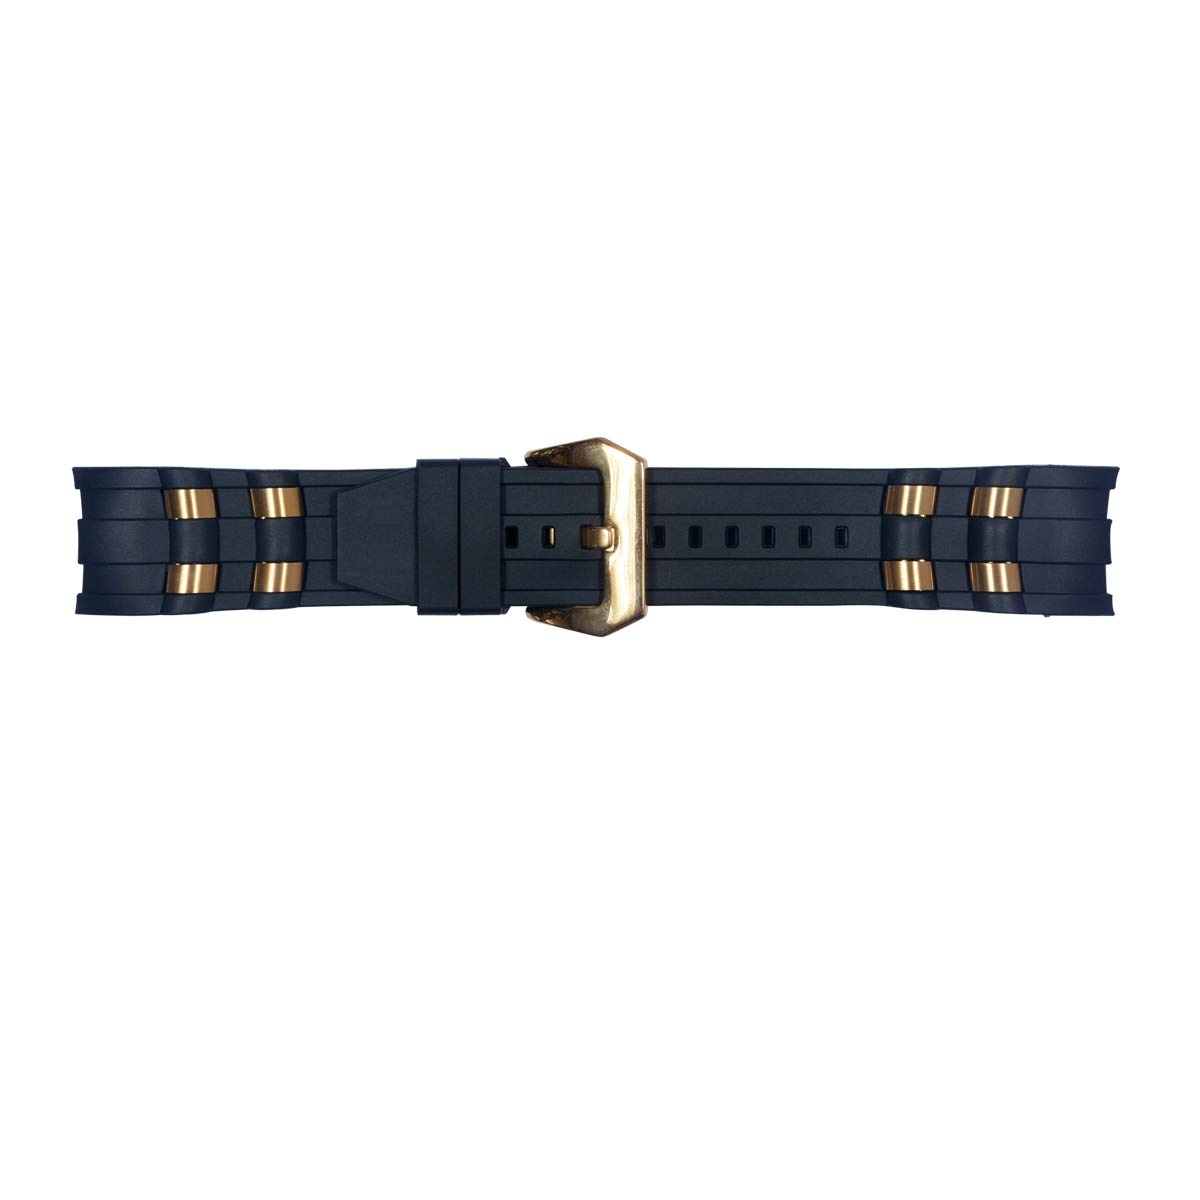 Vicdason for Invicta Pro Diver Watch Bands Replacement Strap with Bukcle Metal Inserts - Black Rubber Silicone Invicta Watch Strap by Vicdason (Image #3)